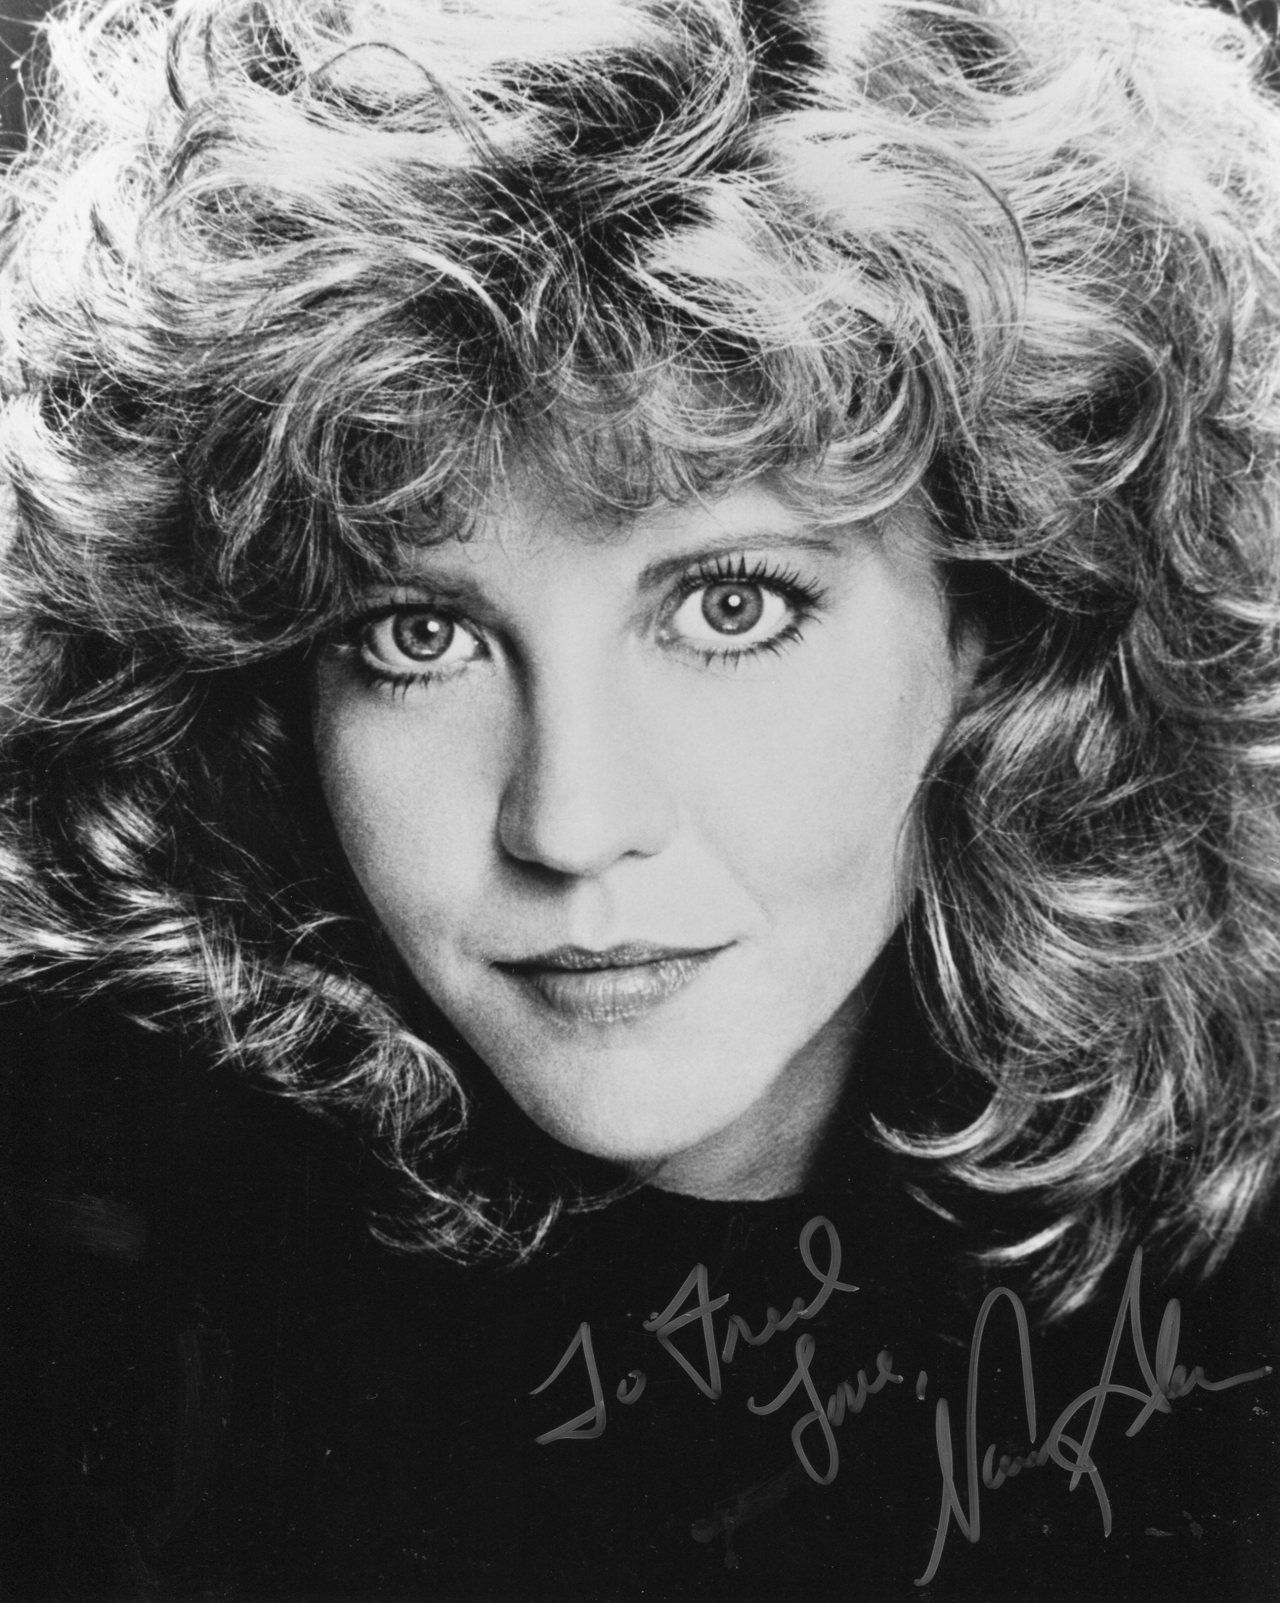 nancy allen wikinancy allen 2016, nancy allen 2015, nancy allen 1941, nancy allen harp, nancy allen photo, nancy allen imdb, nancy allen 2014, nancy allen, nancy allen carrie, nancy allen wiki, nancy allen robocop, nancy allen lundy, nancy allen harpist, nancy allen blow out, nancy allen young, nancy allen net worth, nancy allen hot, nancy allen author